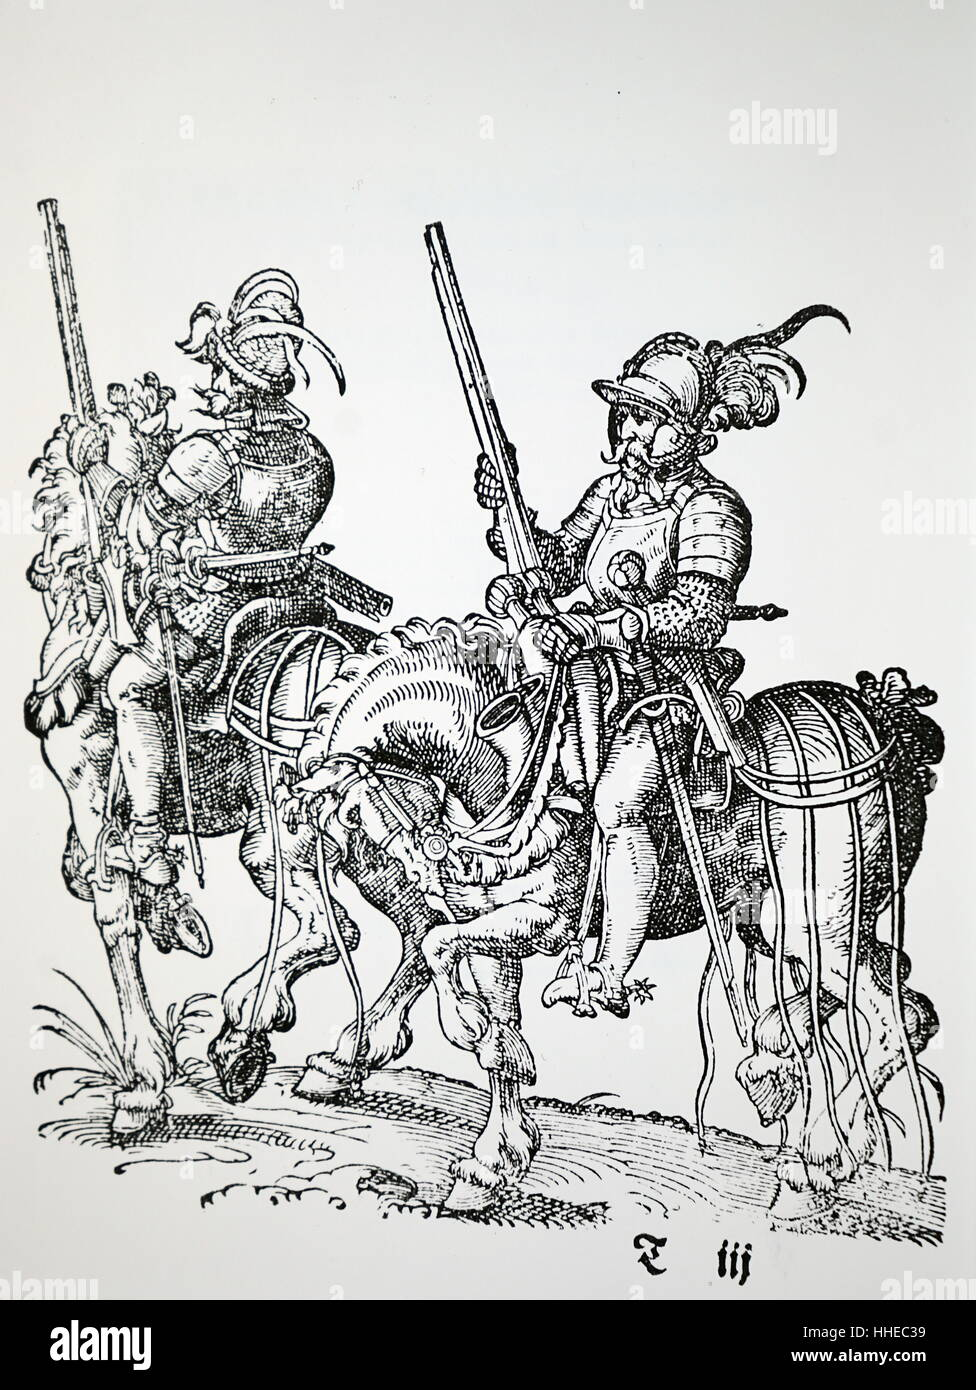 Cavalrymen with muskets, pistols and swords. Woodcut by Jost Amman published 1599 - Stock Image